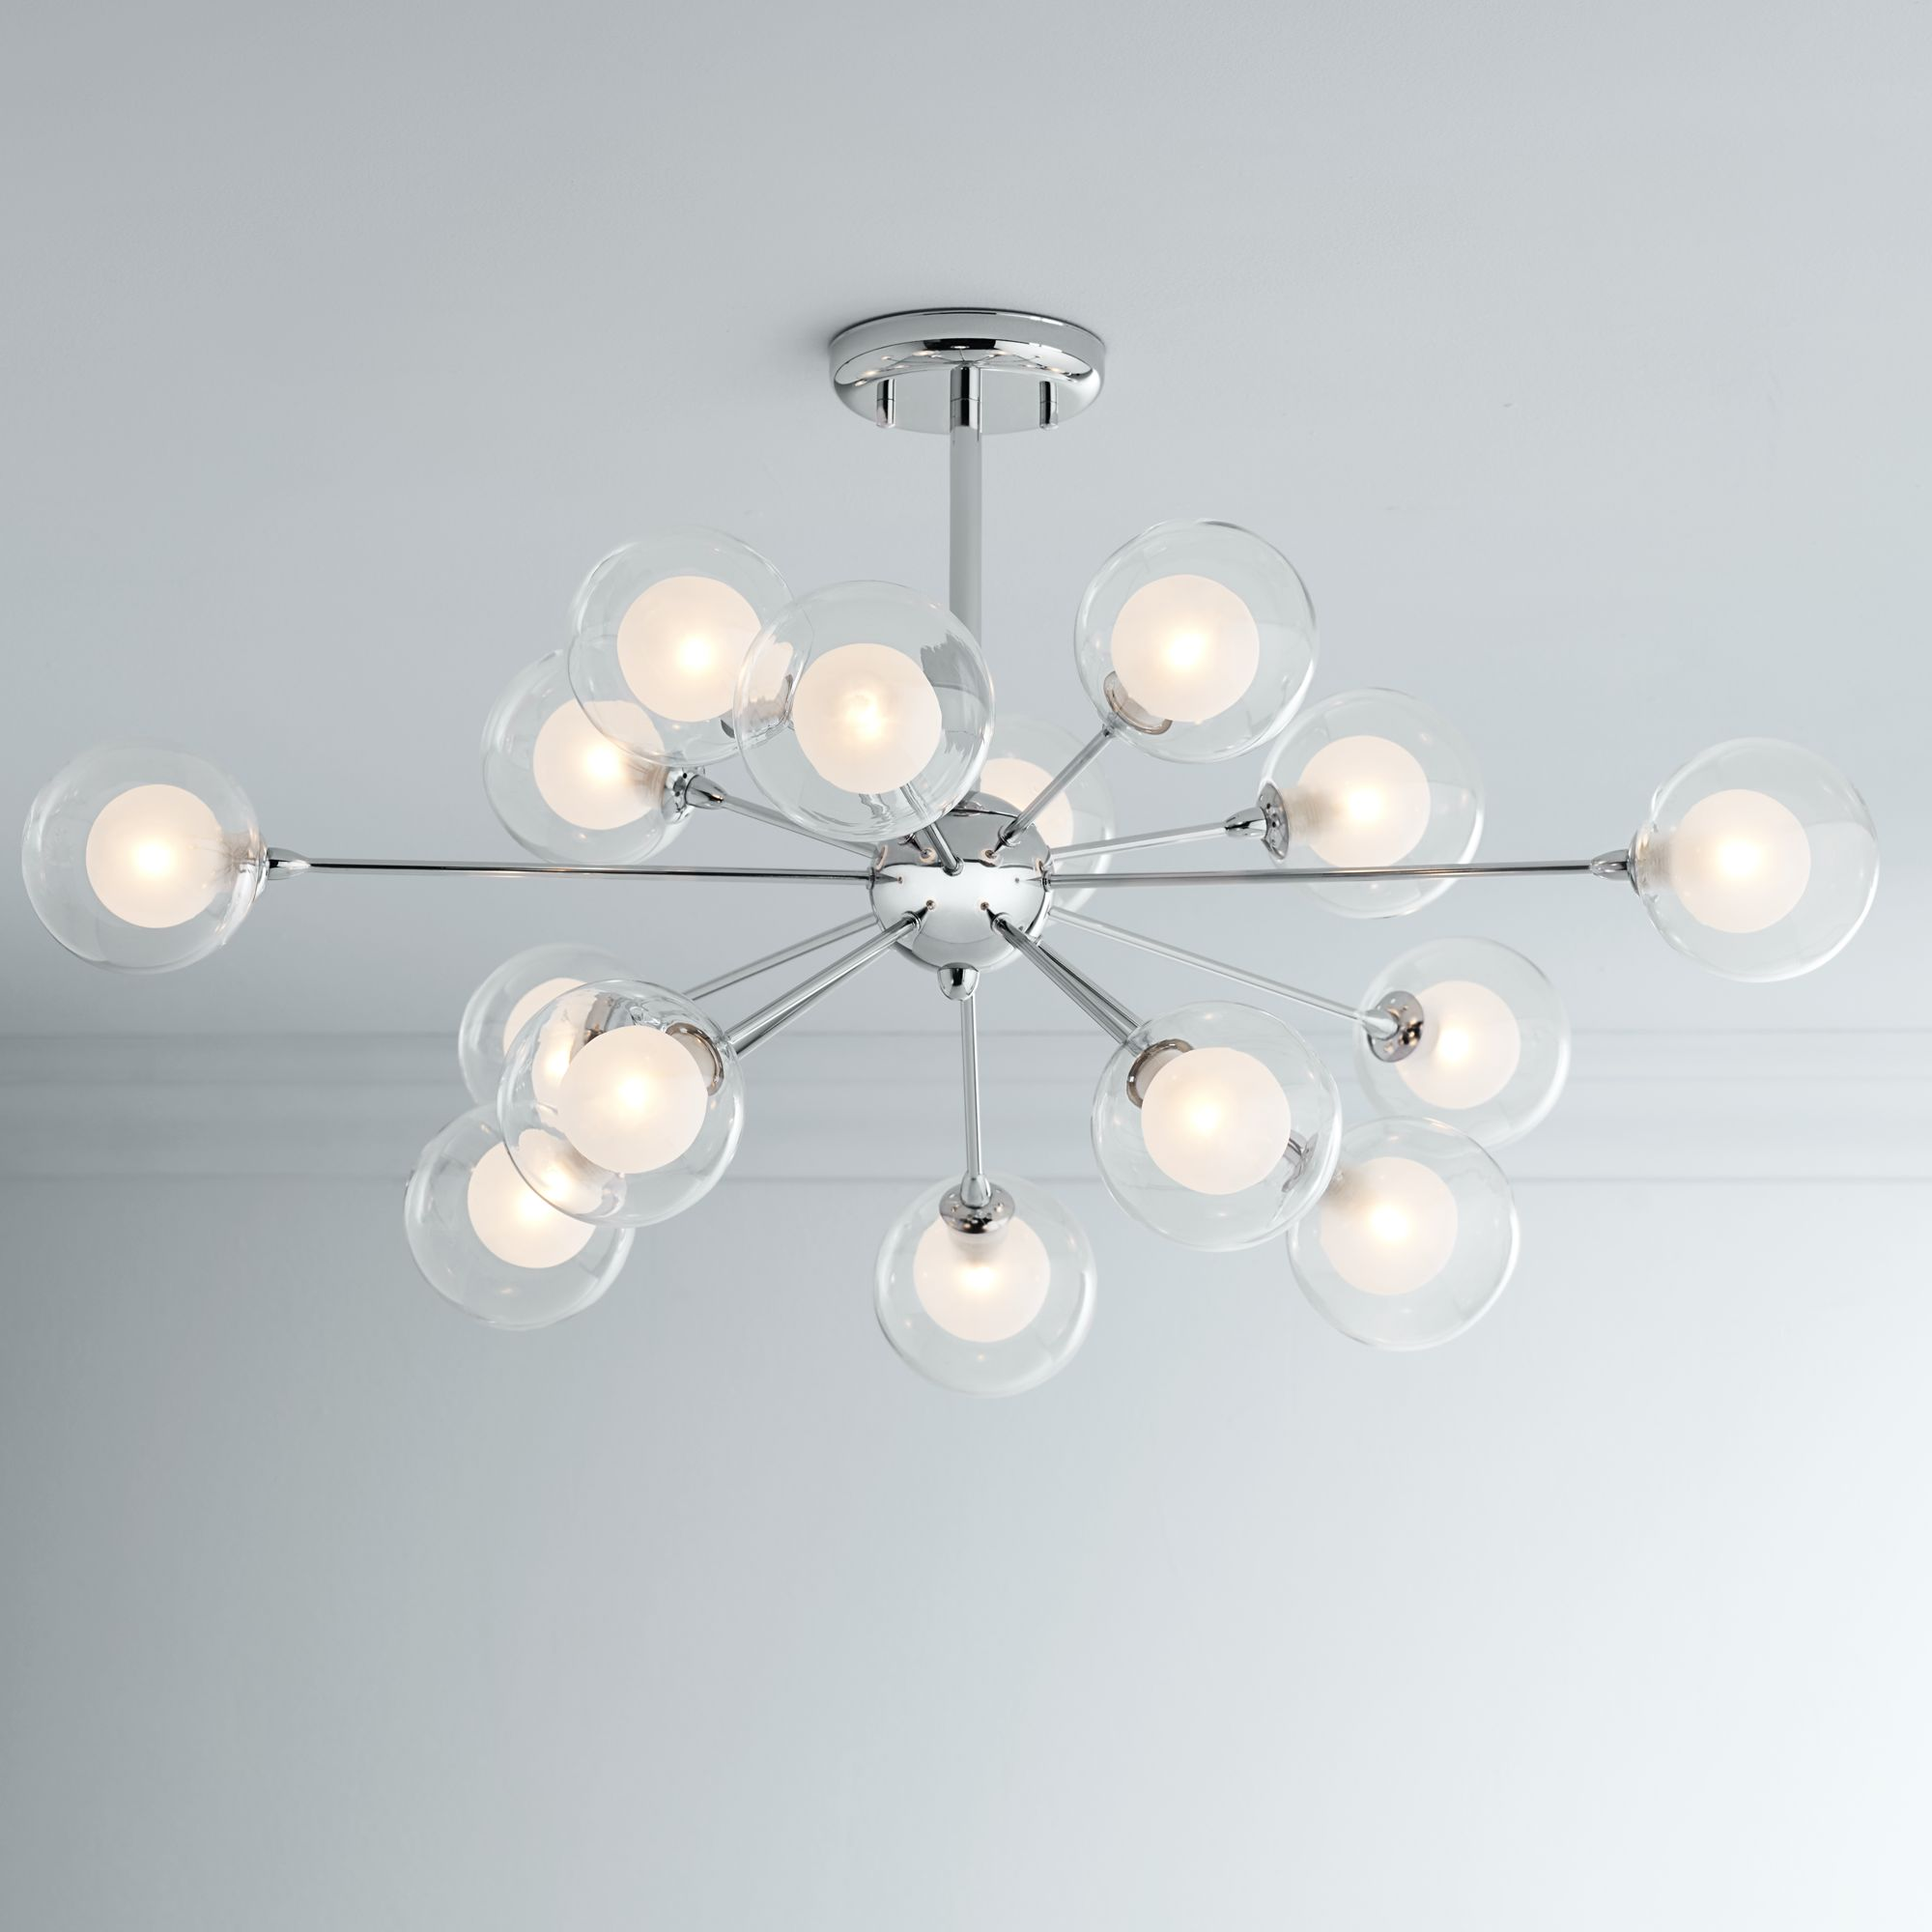 Attractive Possini Euro Design Glass Sphere 15 Light Ceiling Light Design Inspirations